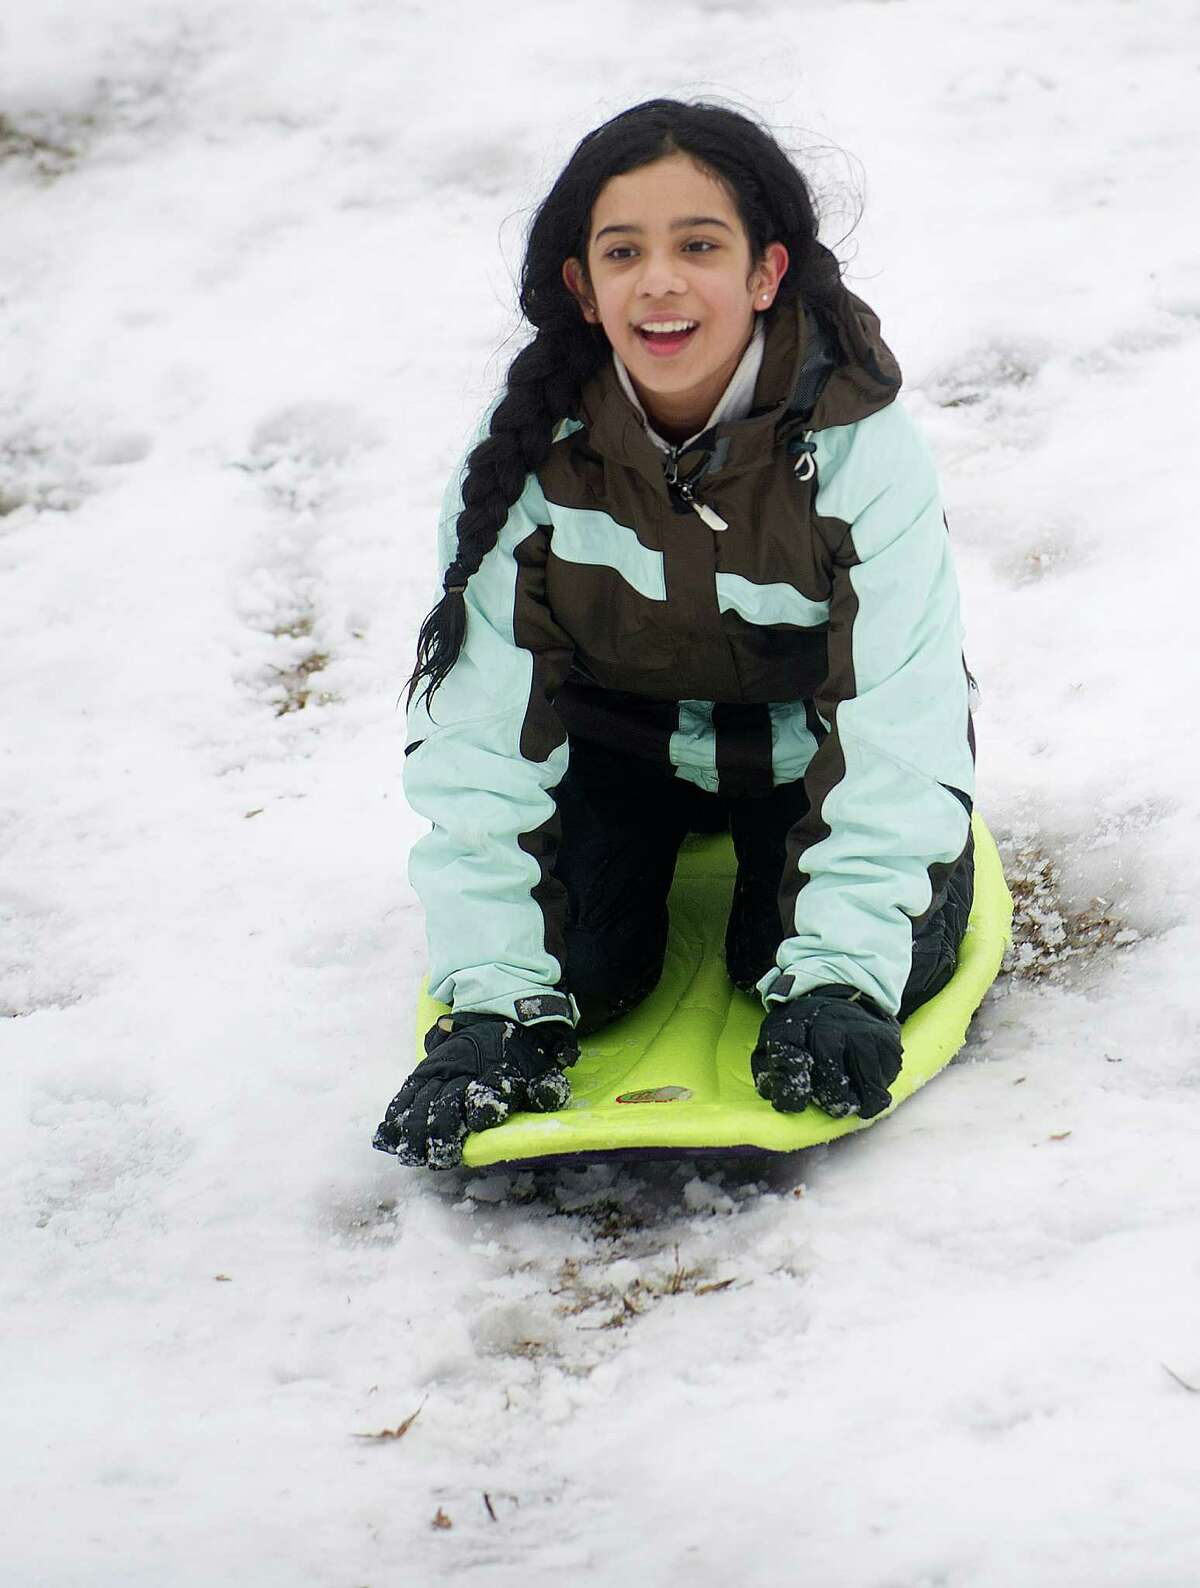 Vanessa Luna, 11, sleds at Cummings Park in Stamford, Conn., on Saturday, January 24, 2015.